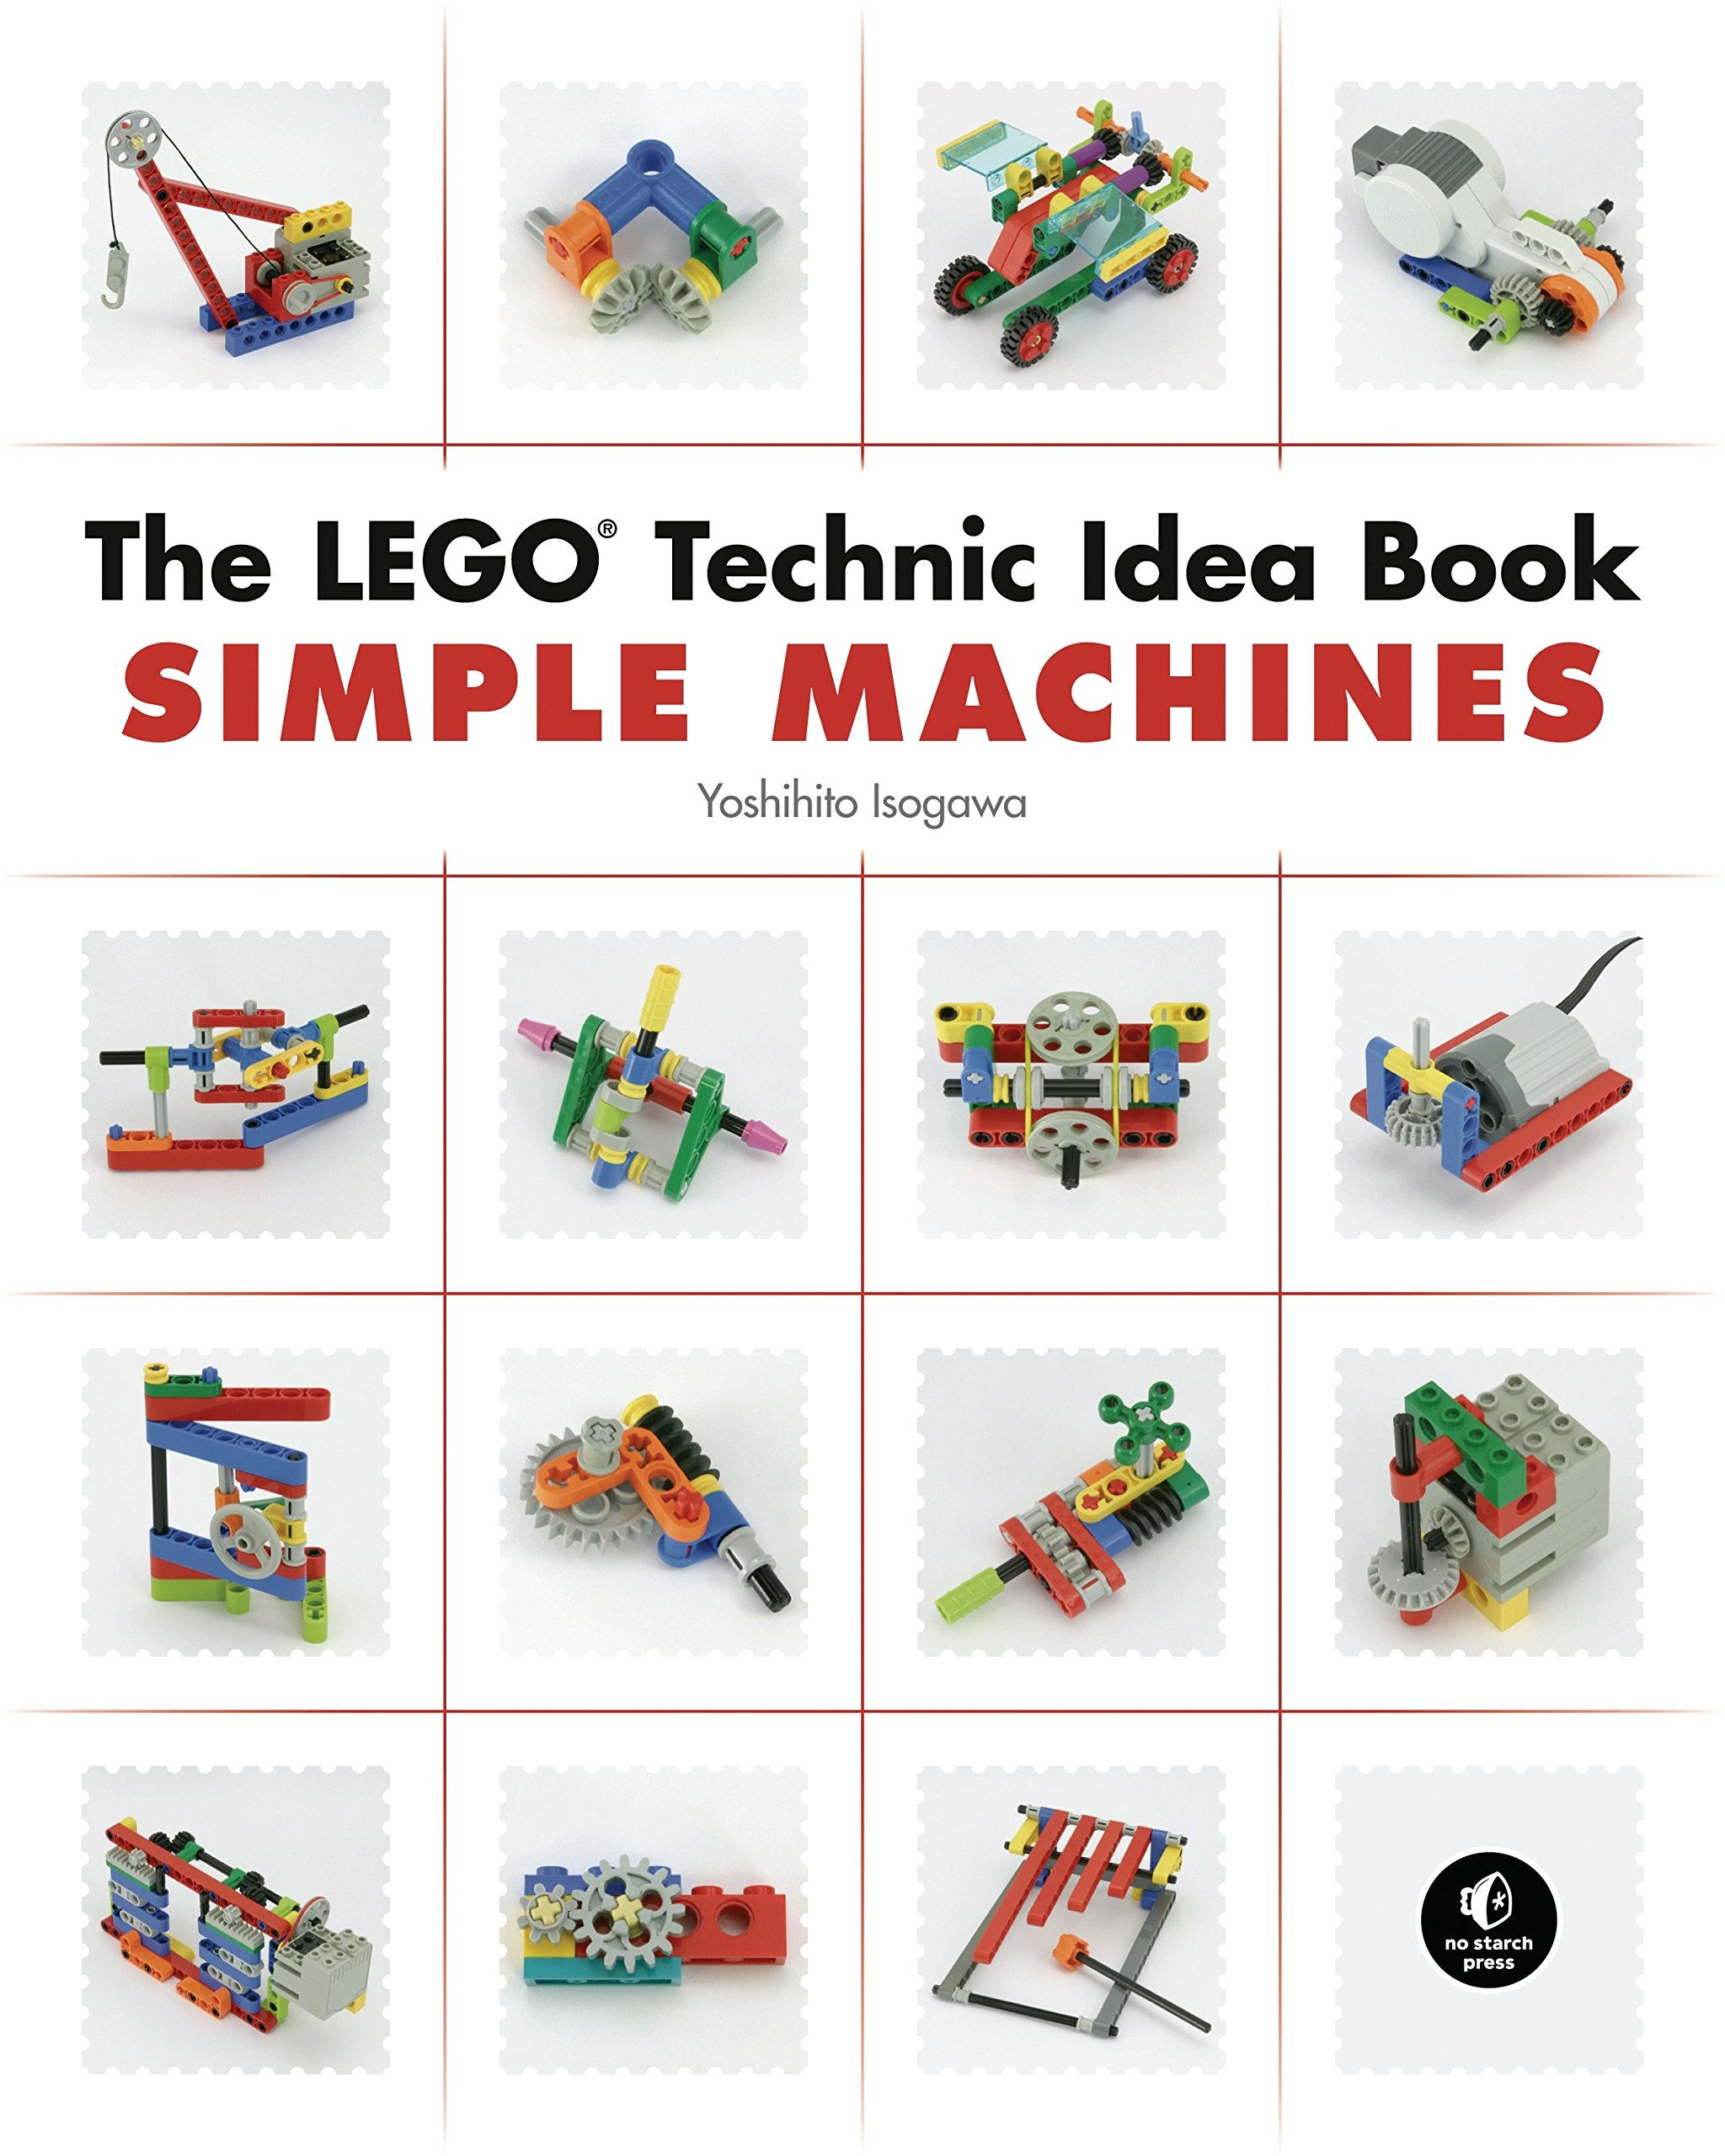 Image OfThe LEGO Technic Idea Book: Simple Machines